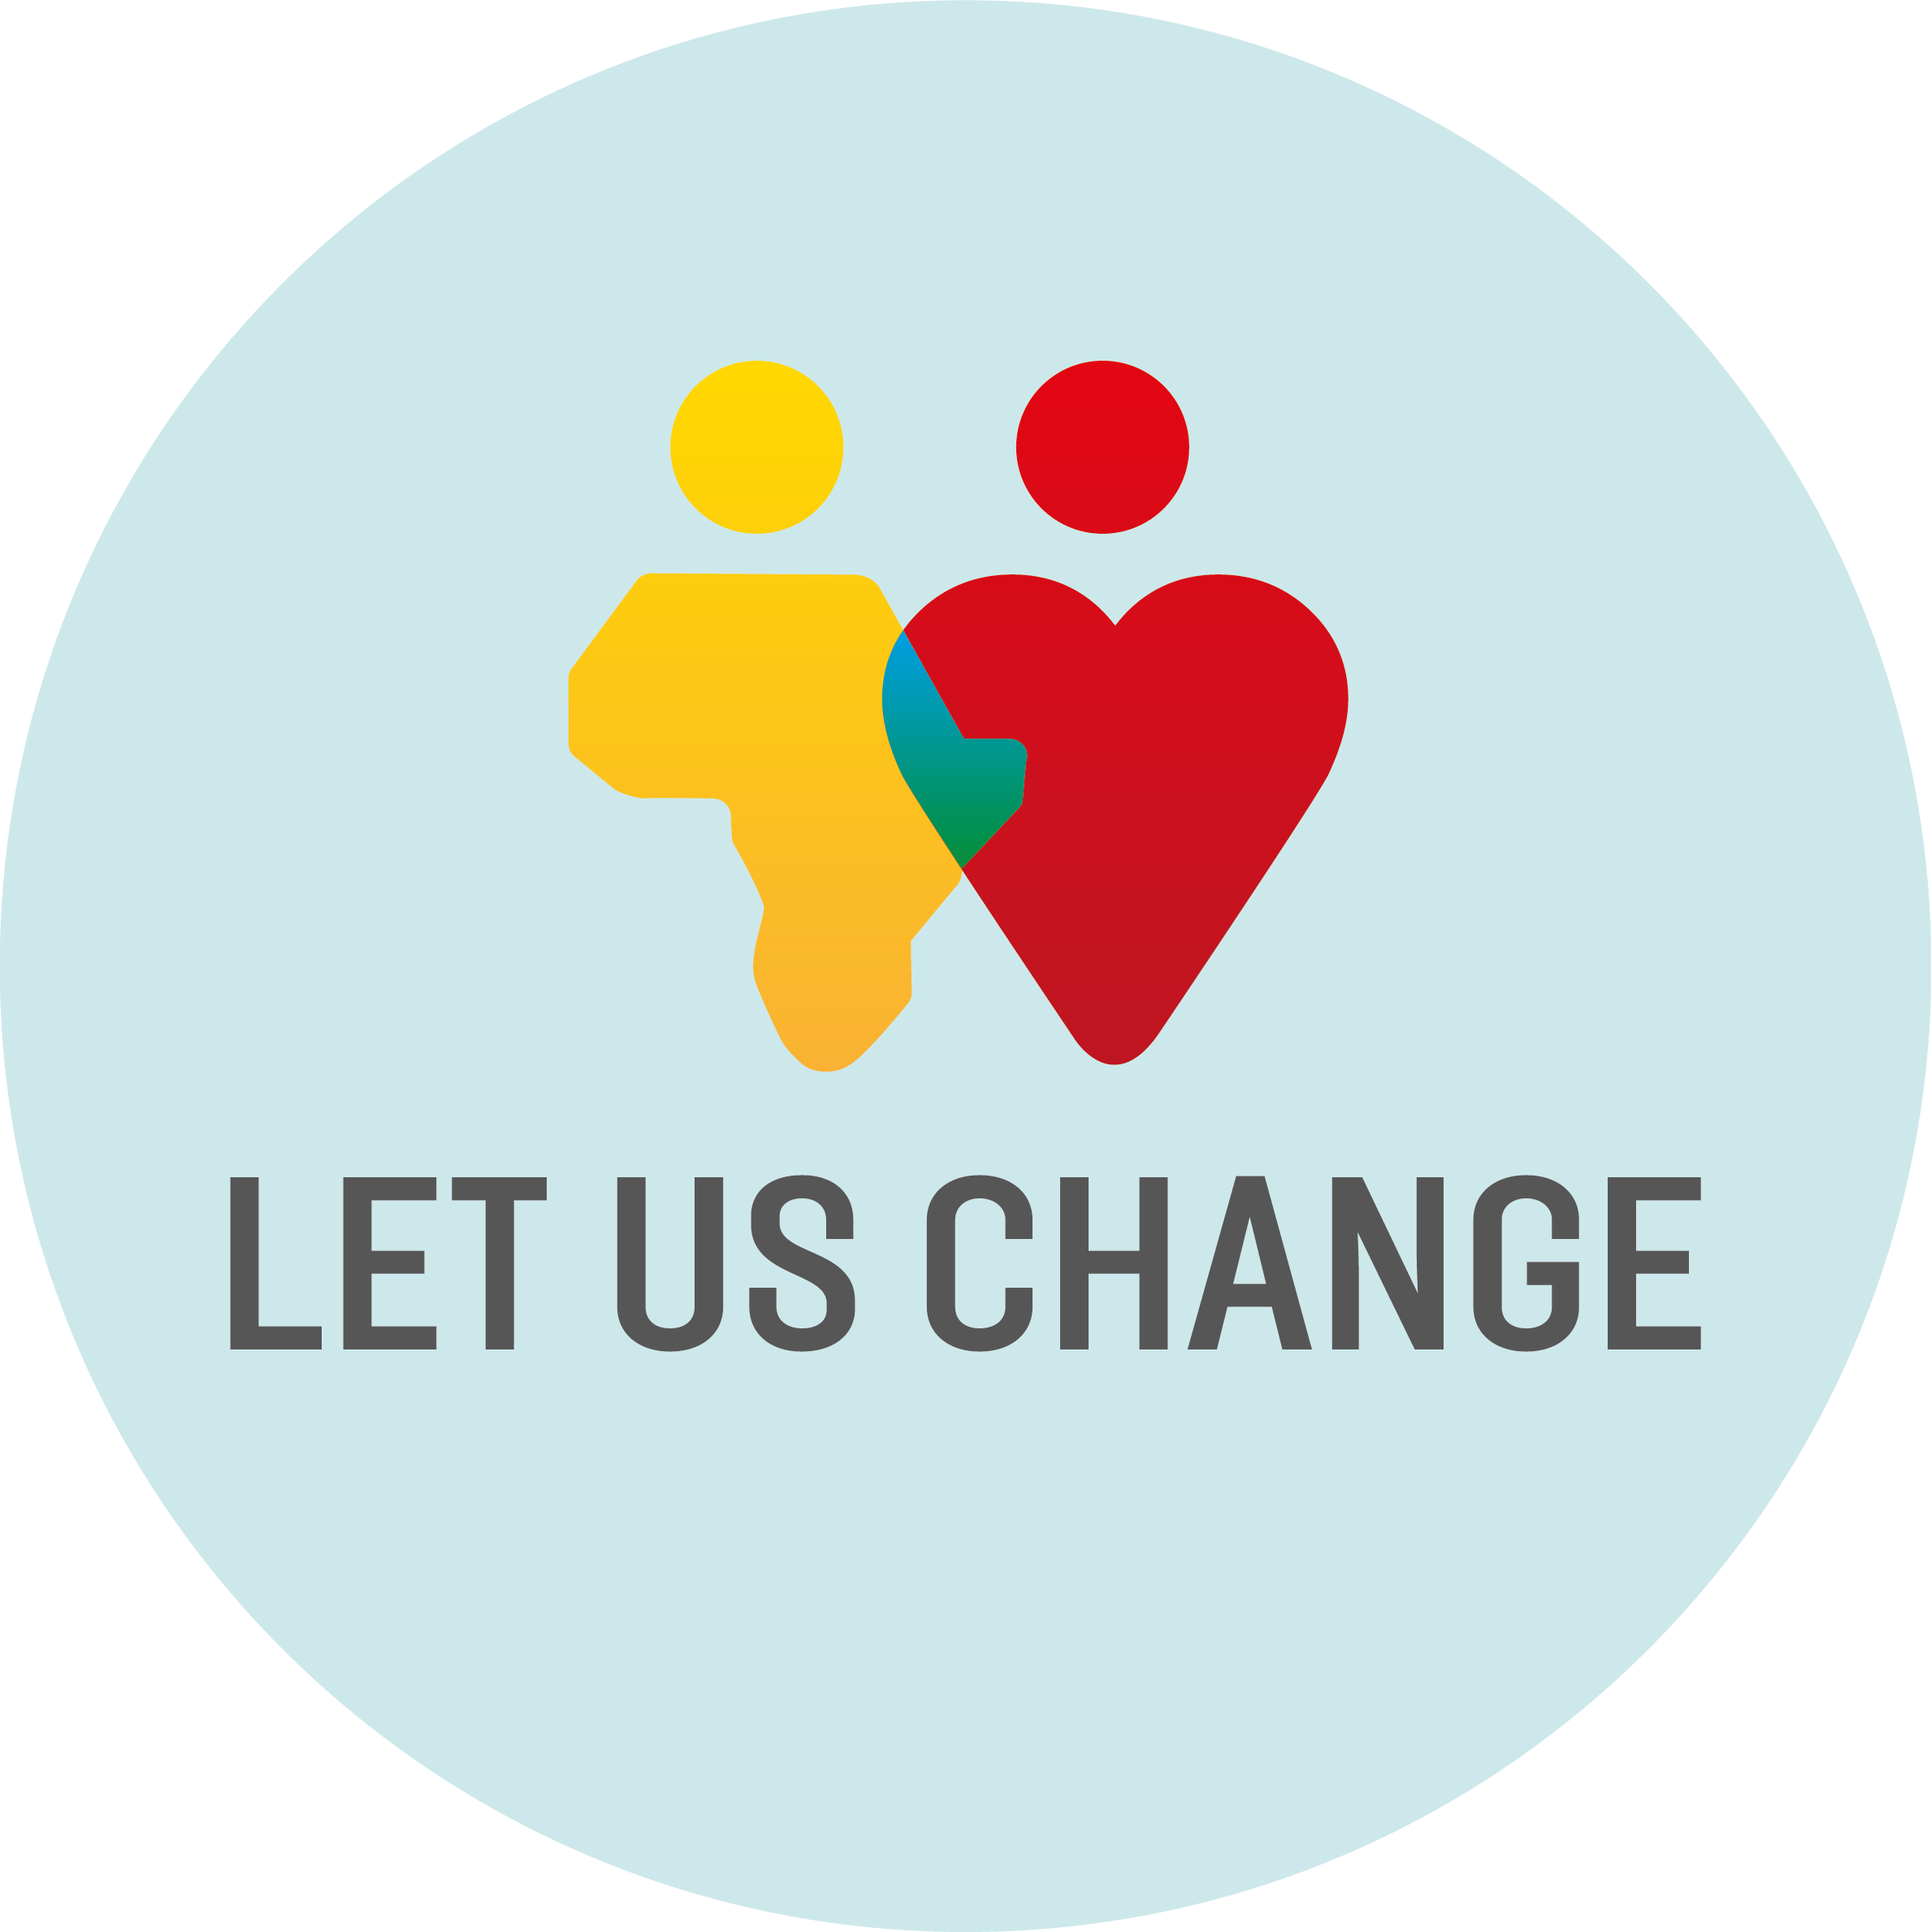 Let Us Change